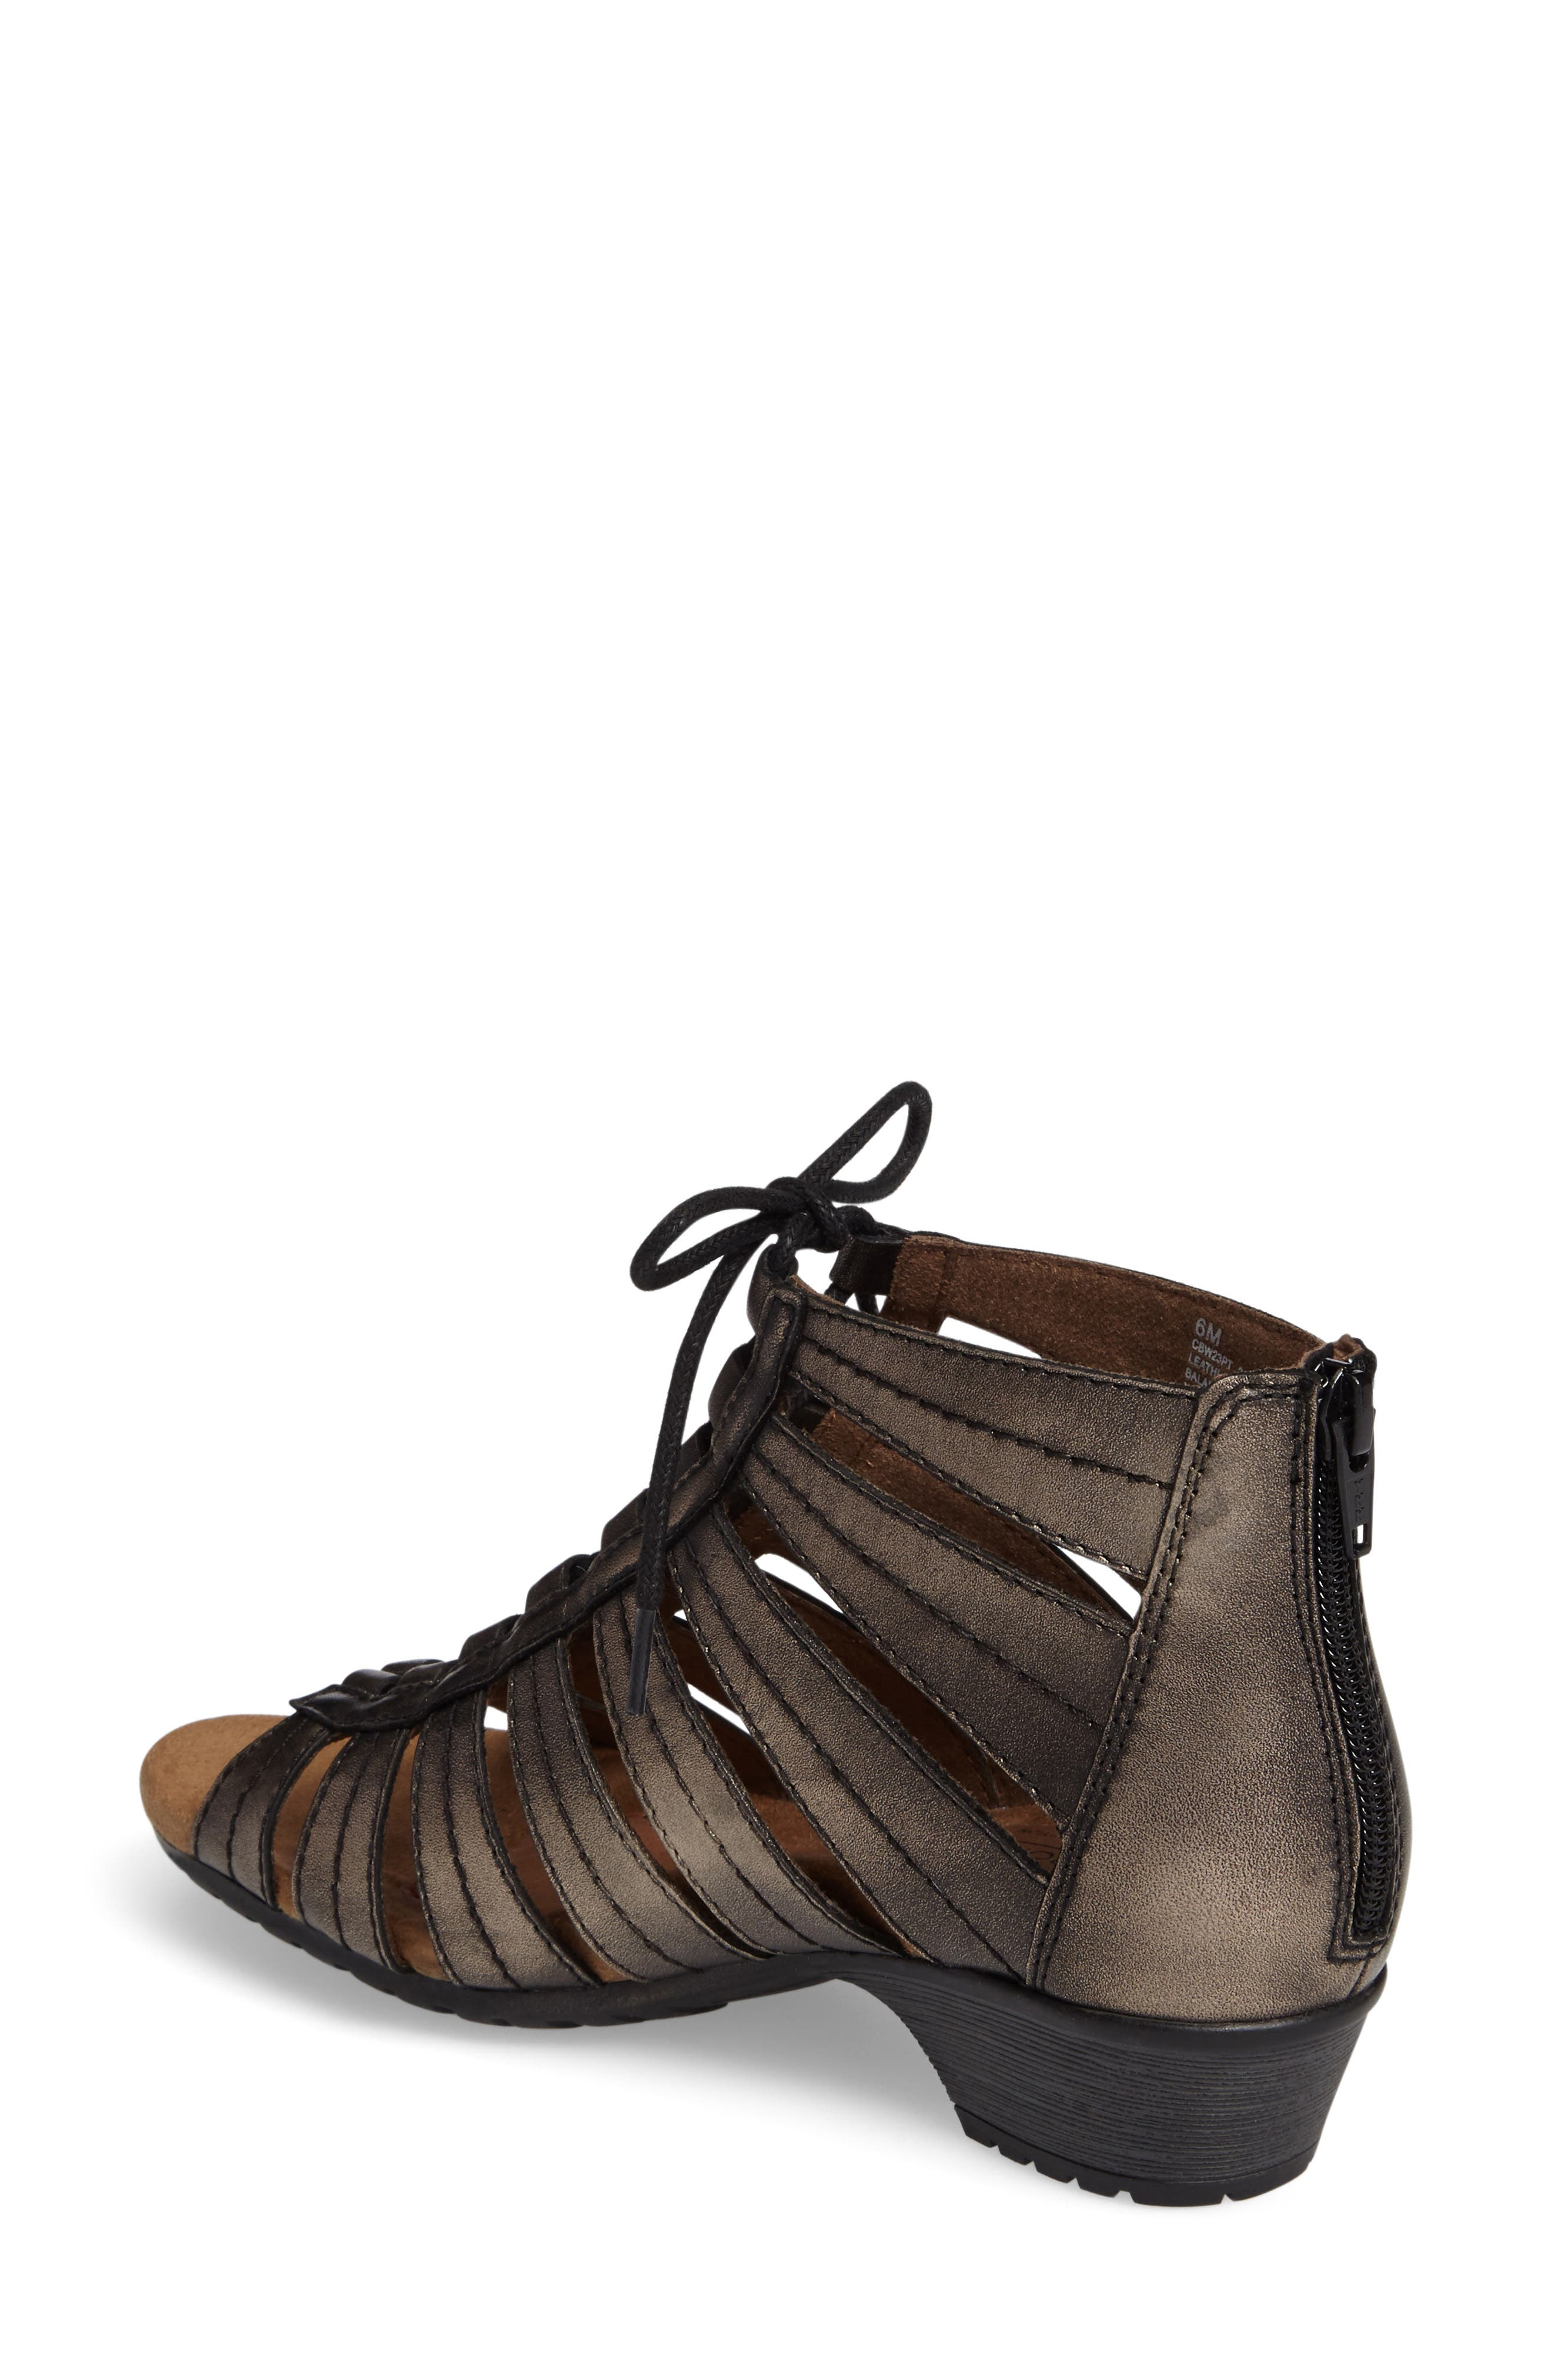 'Gabby' Lace-Up Sandal,                             Alternate thumbnail 12, color,